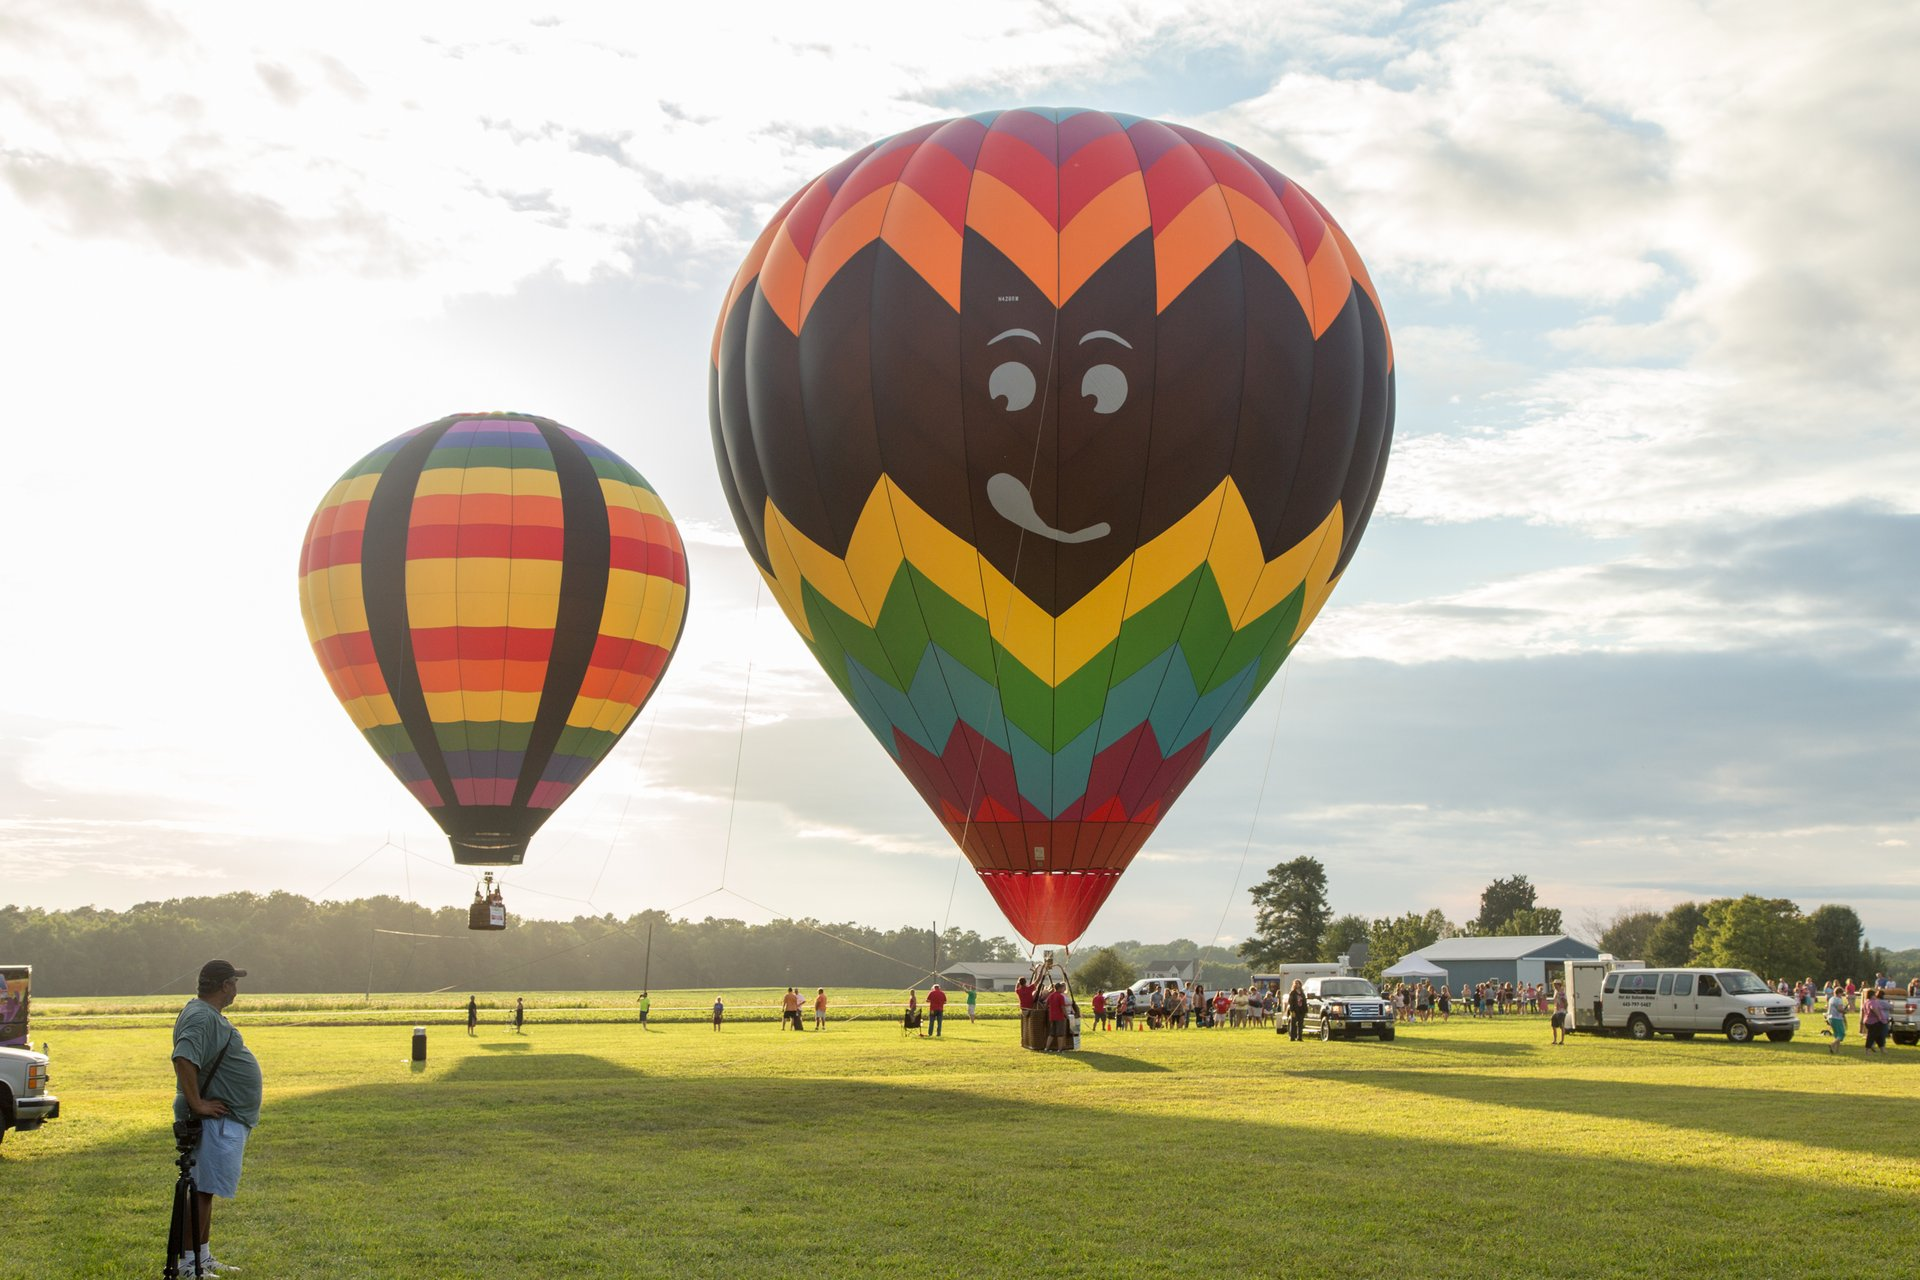 Chesapeake Bay Balloon Festival in Maryland 2019 - Best Time